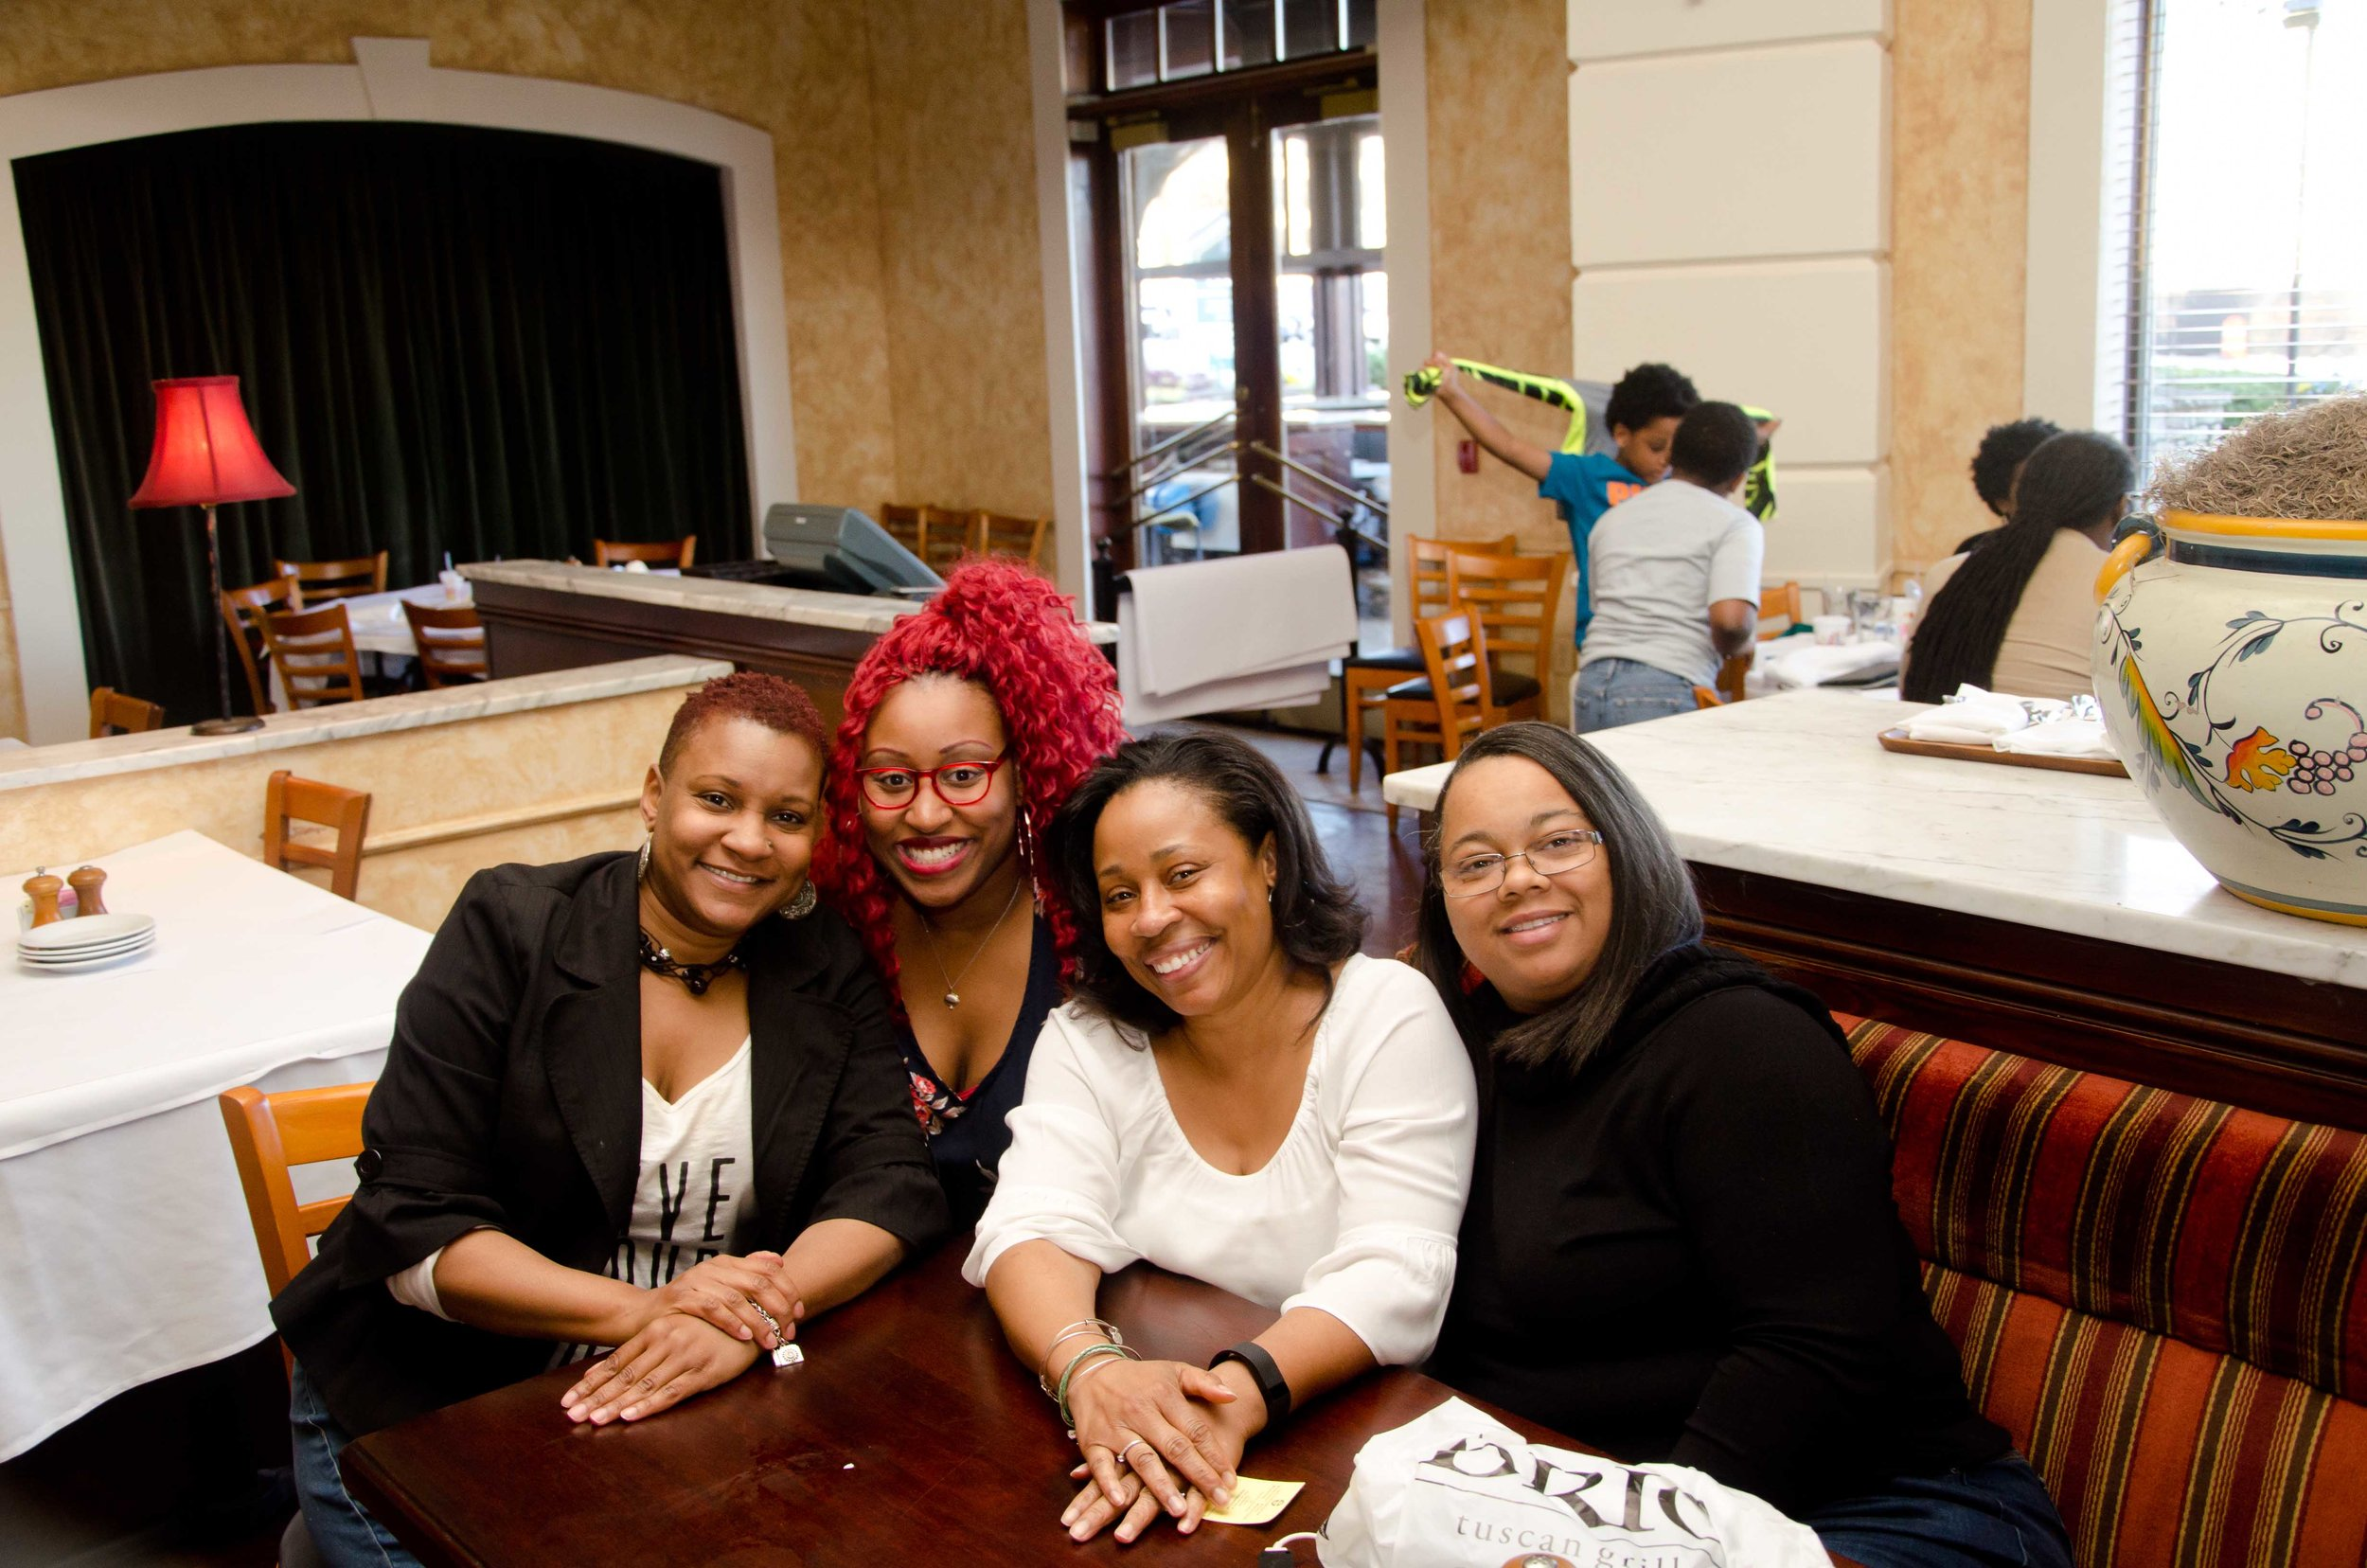 The Real Planners of atlanta  Event planners